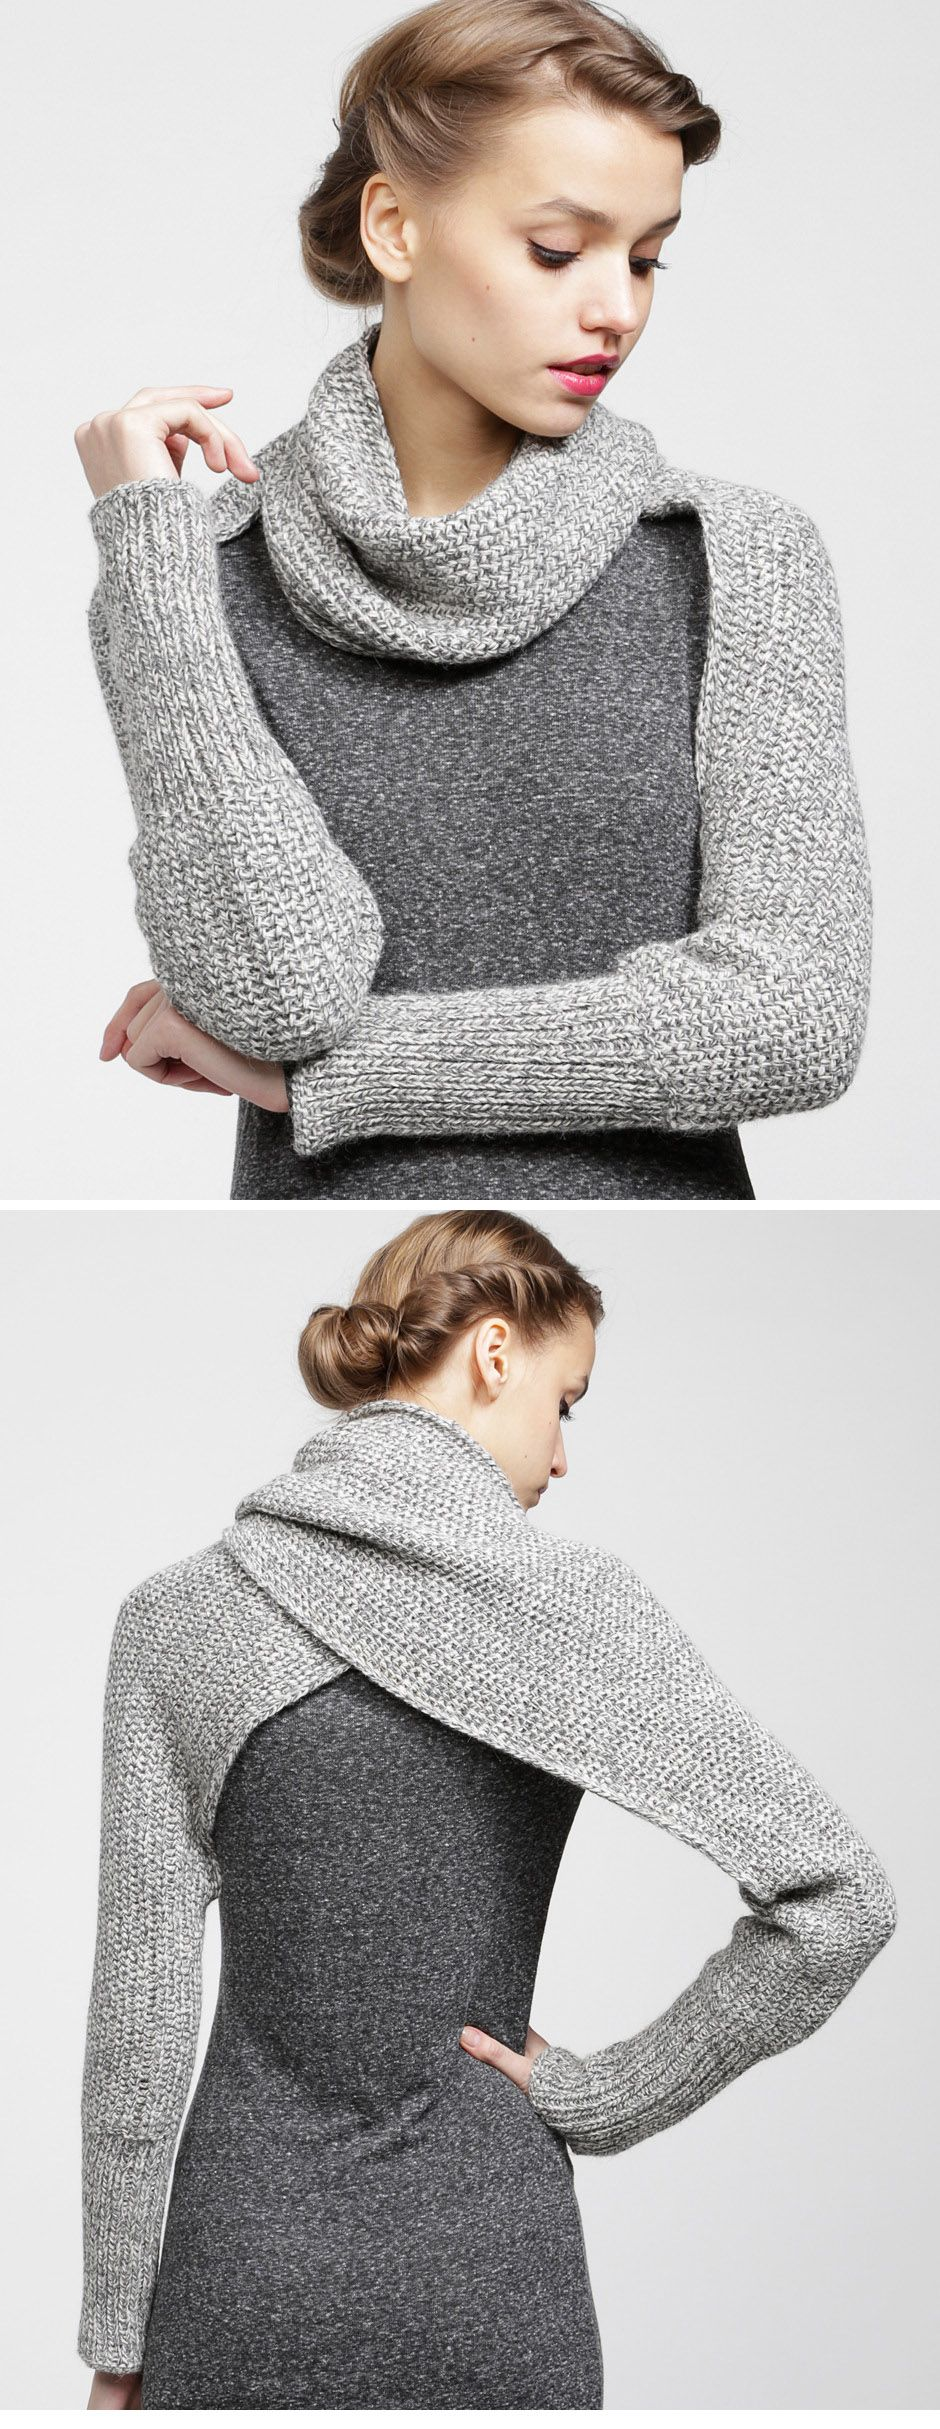 Sleeve wrap | Wool and the Gang | Sticka | Pinterest | Tejido, Manga ...